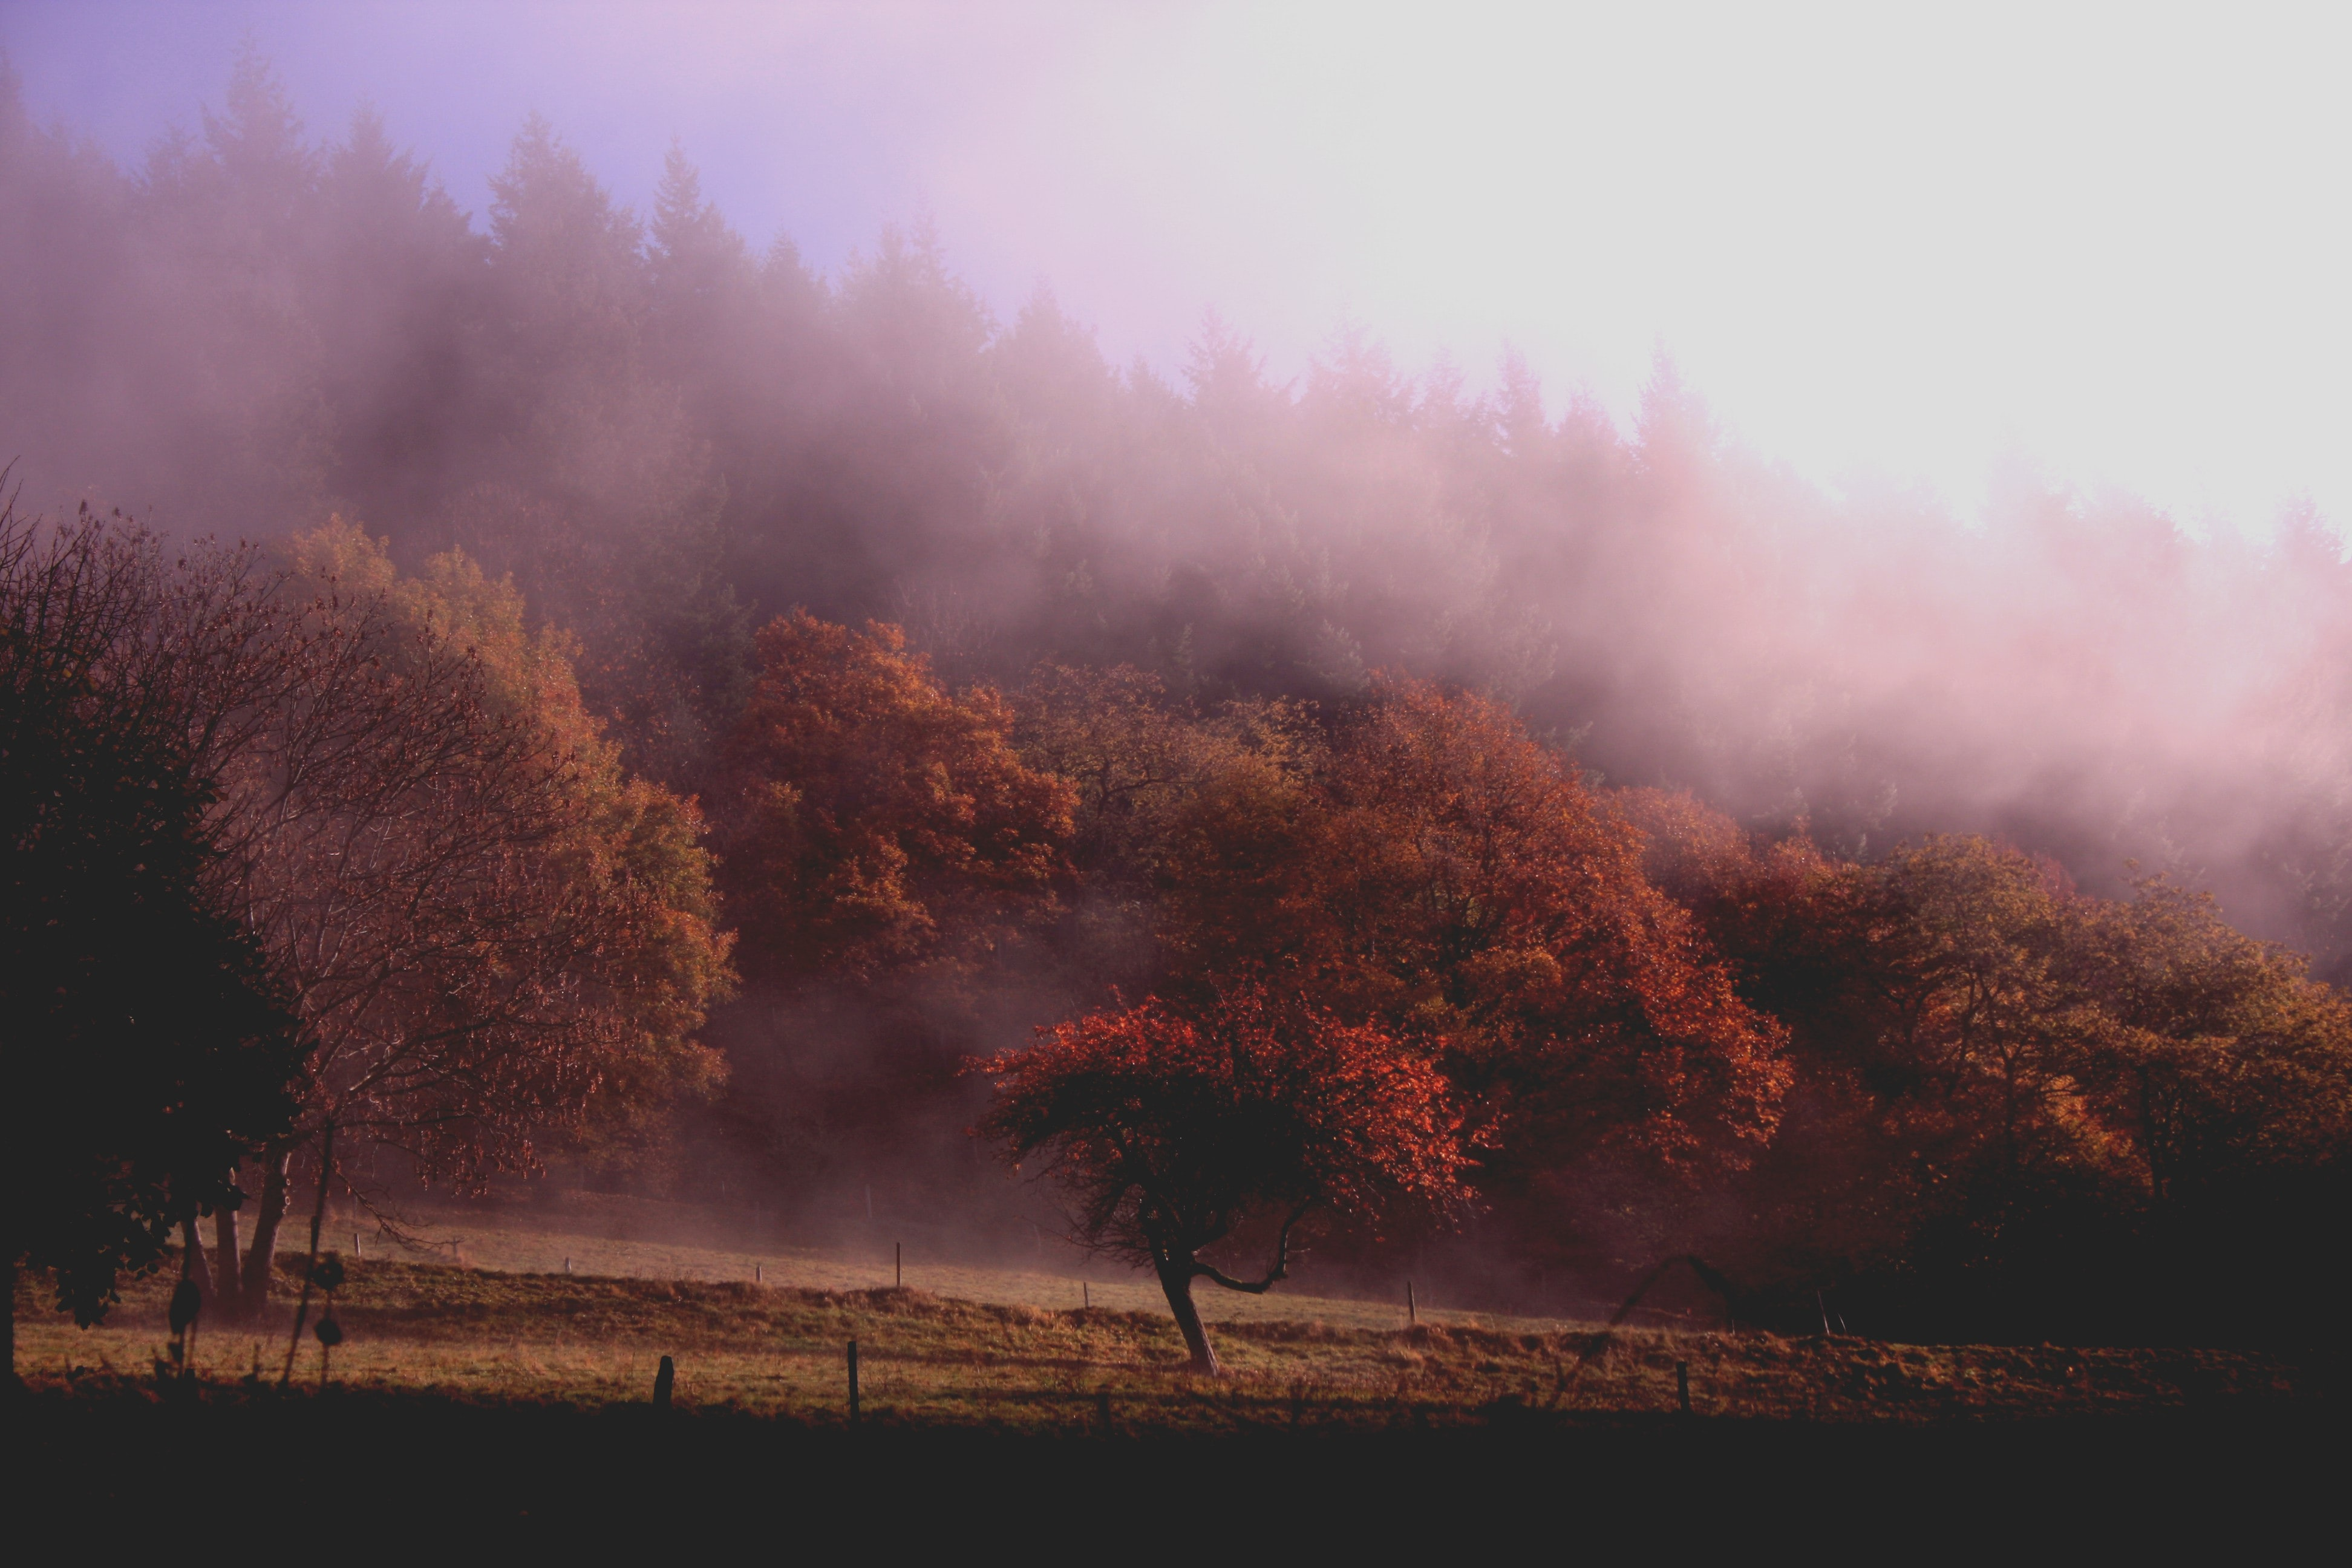 photo of trees with fogs